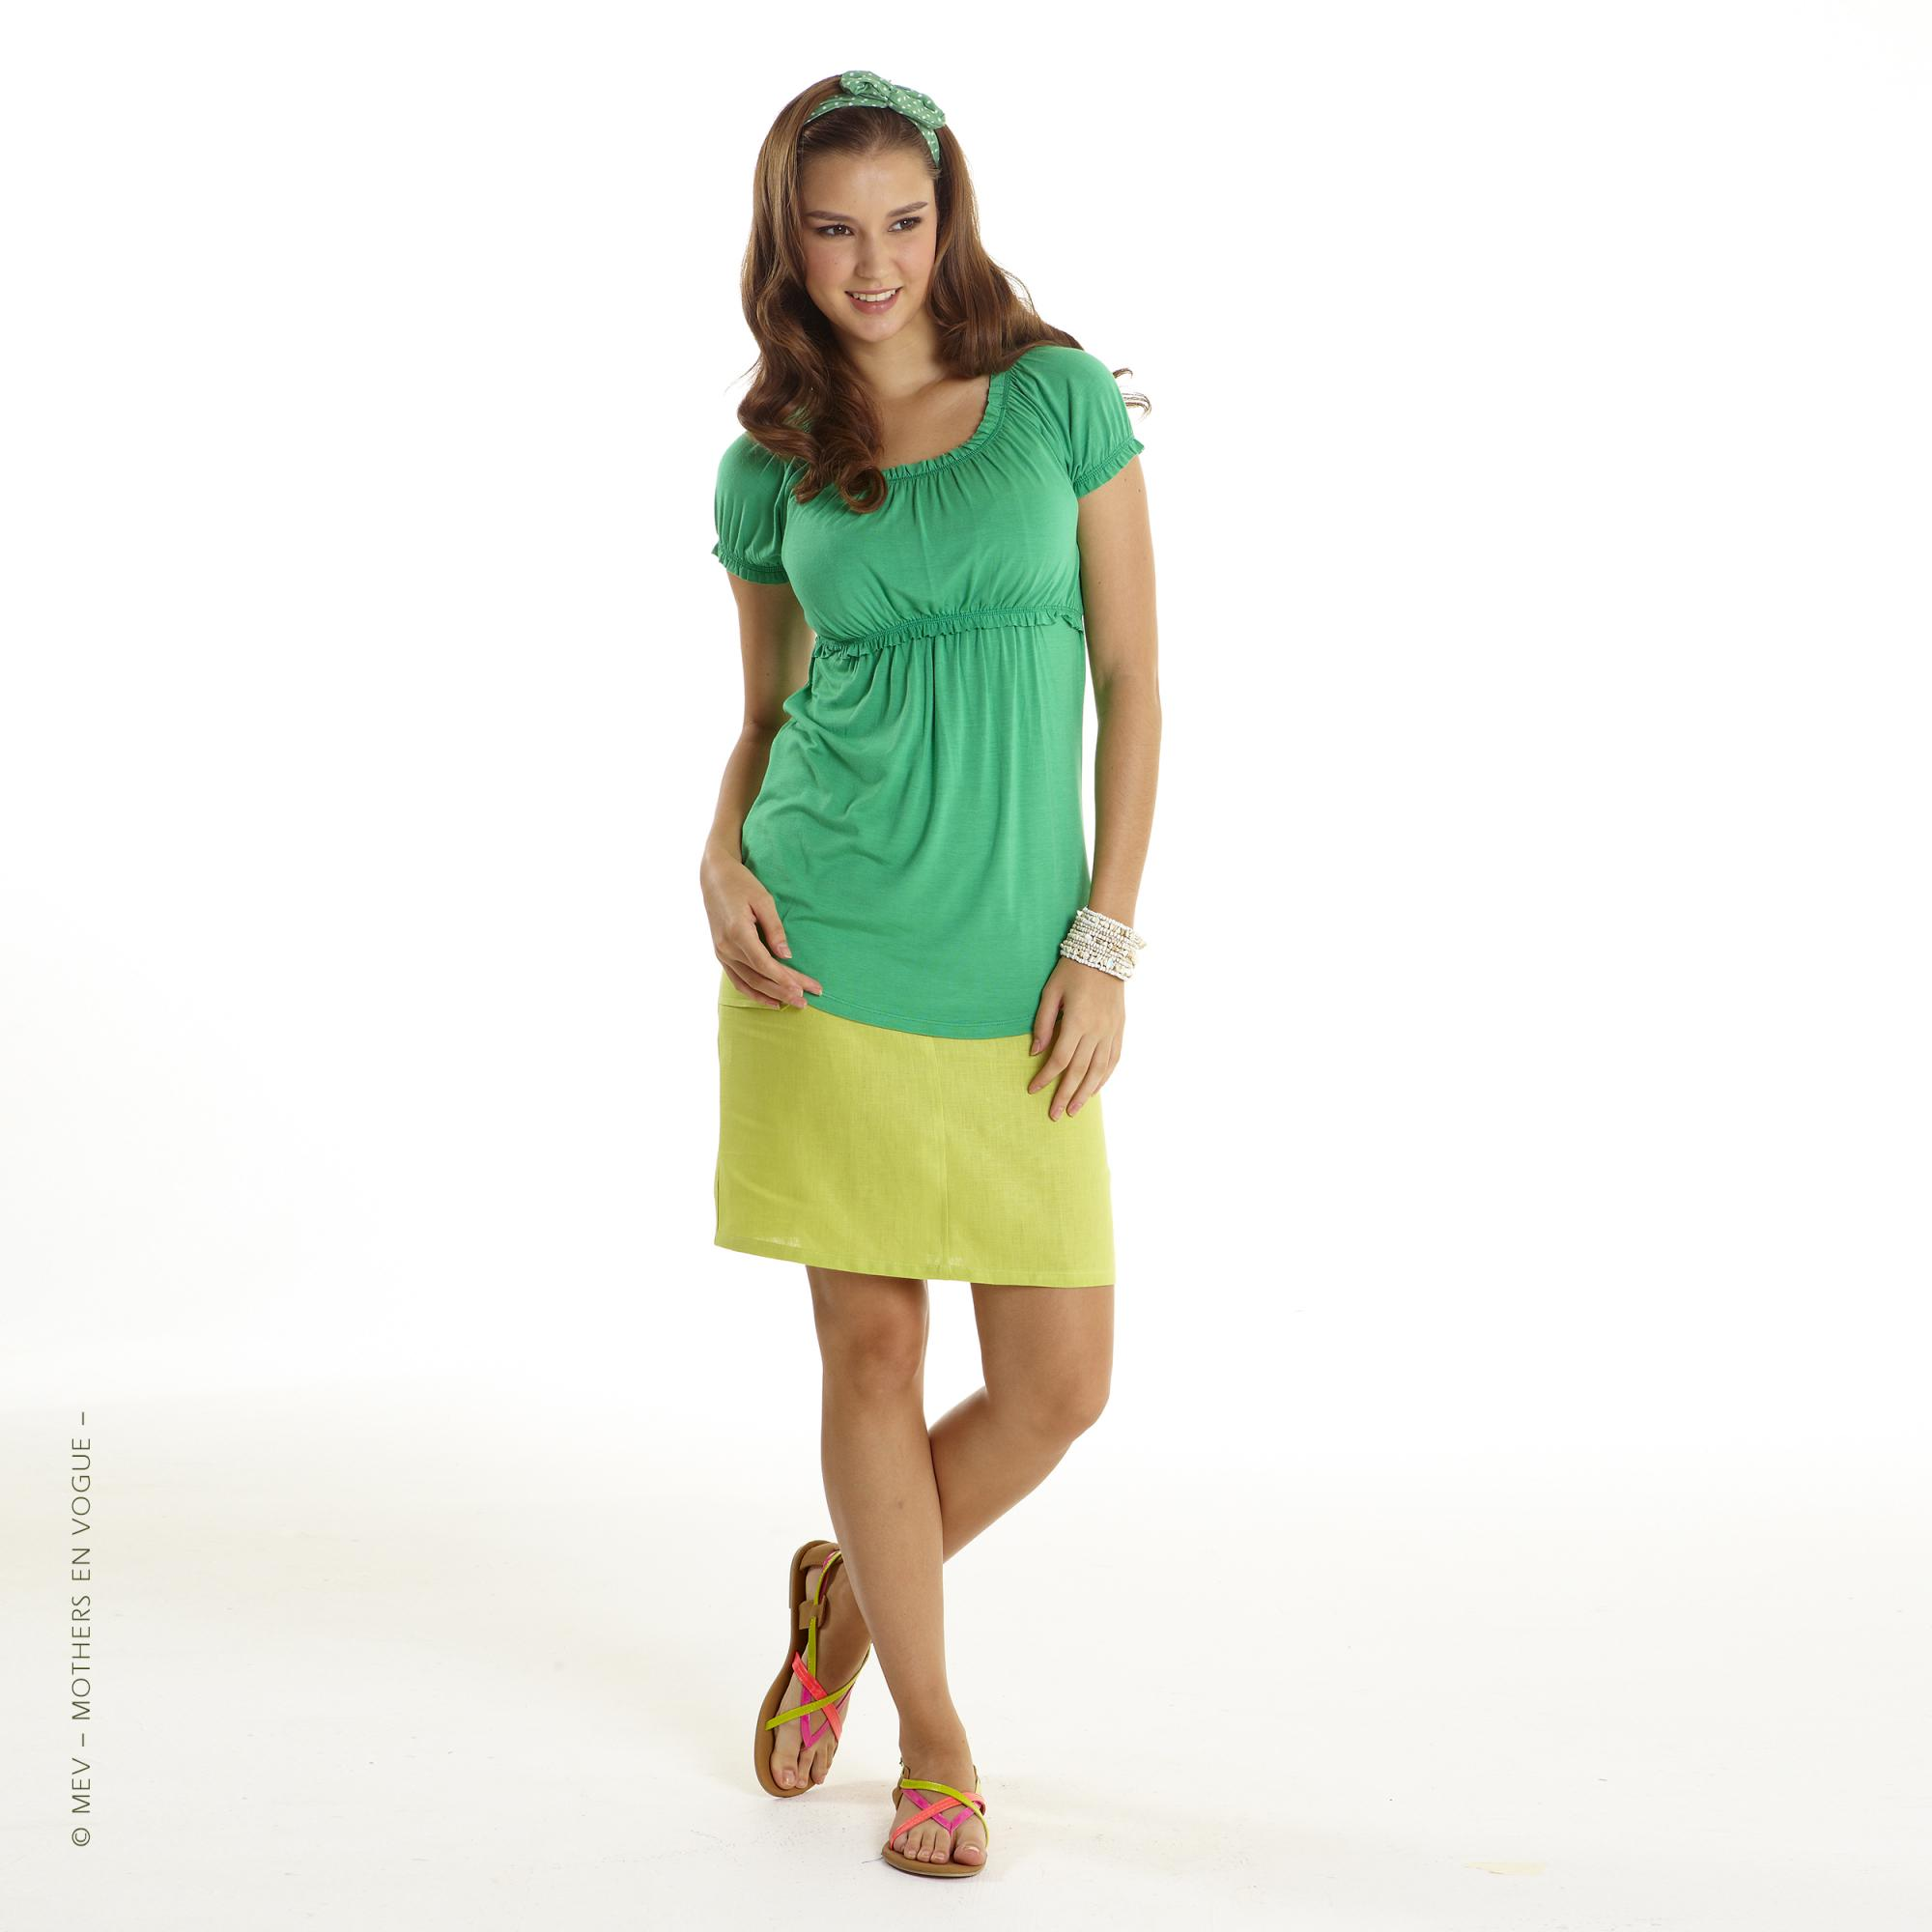 mothers-en-vogue-olena-shortsleeve-nursing-top-ming-green.jpg